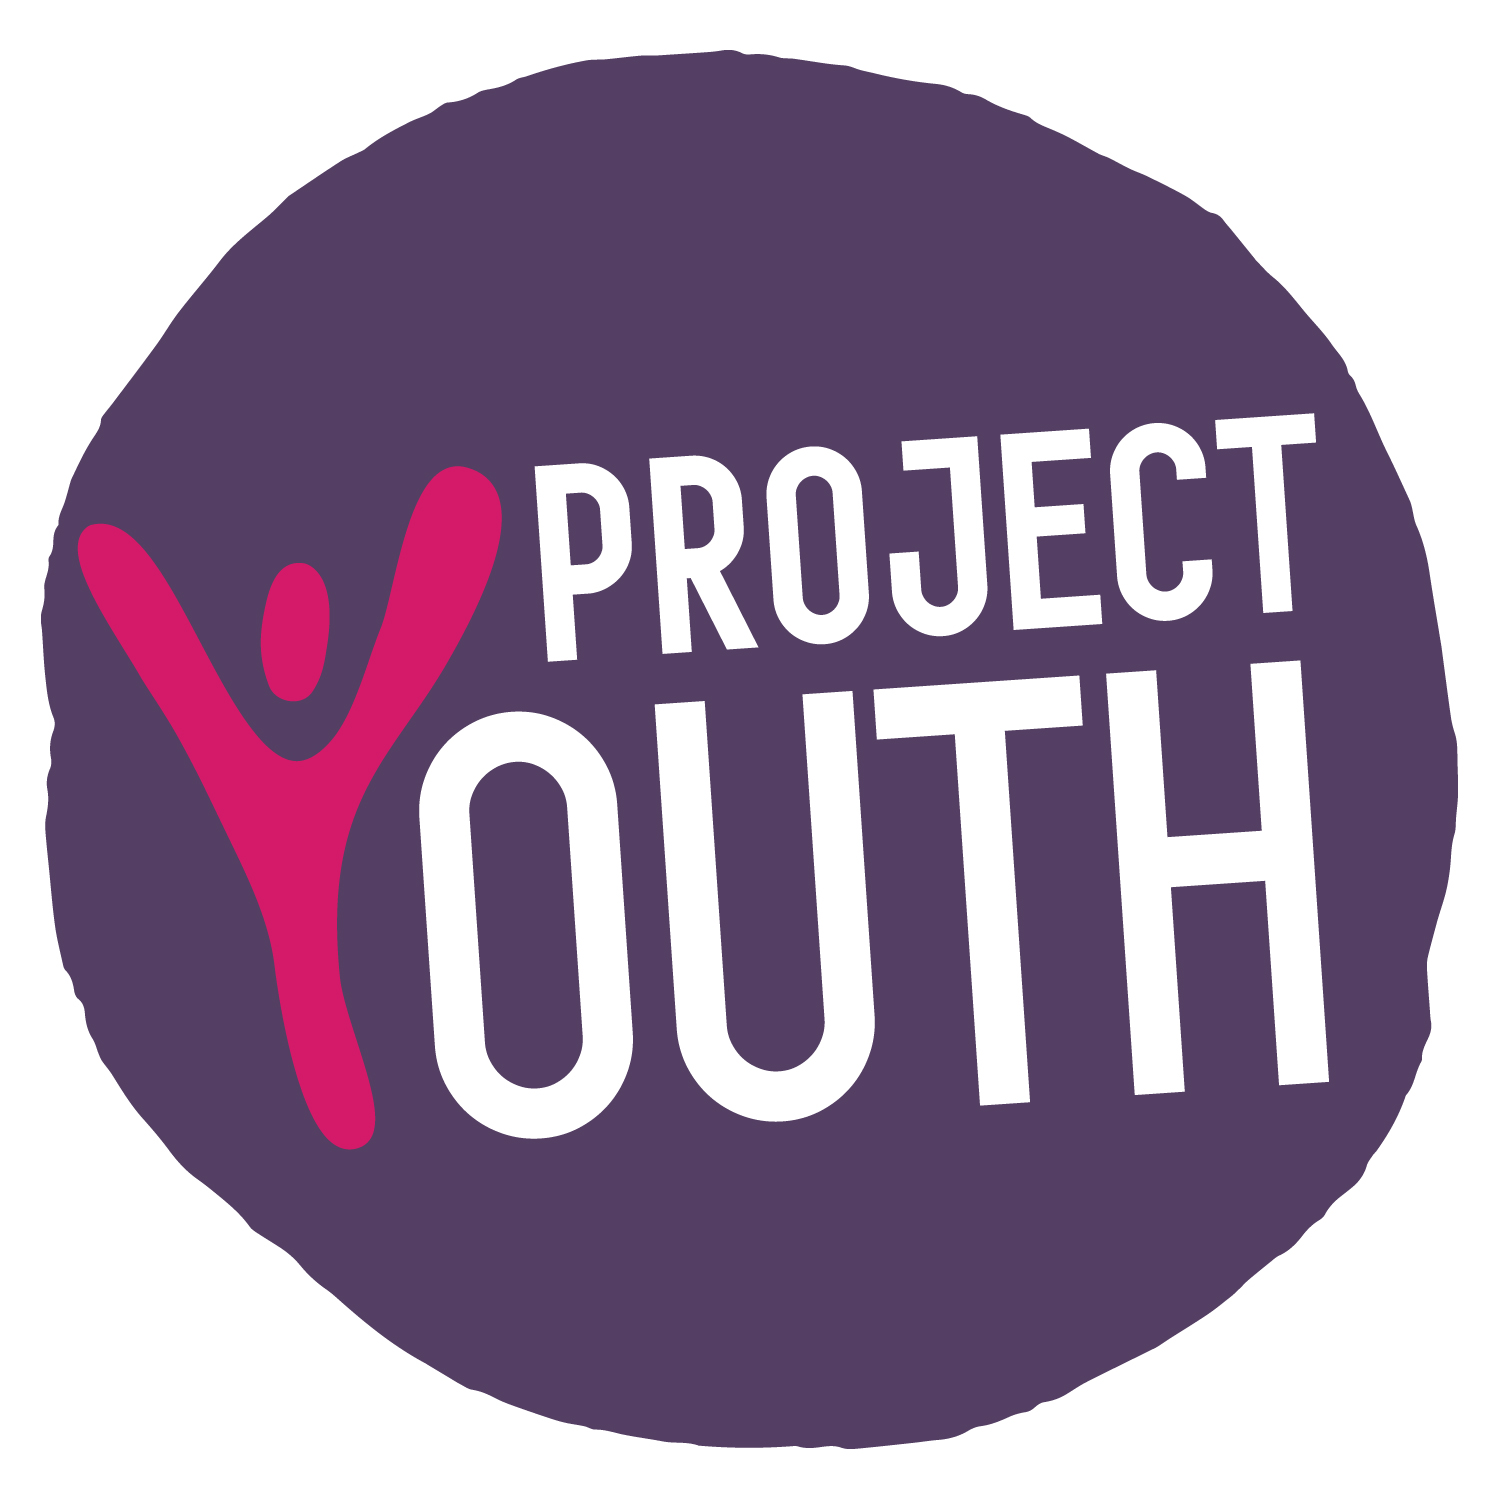 PROJECT-YOUTH-LOGO-highres.jpg